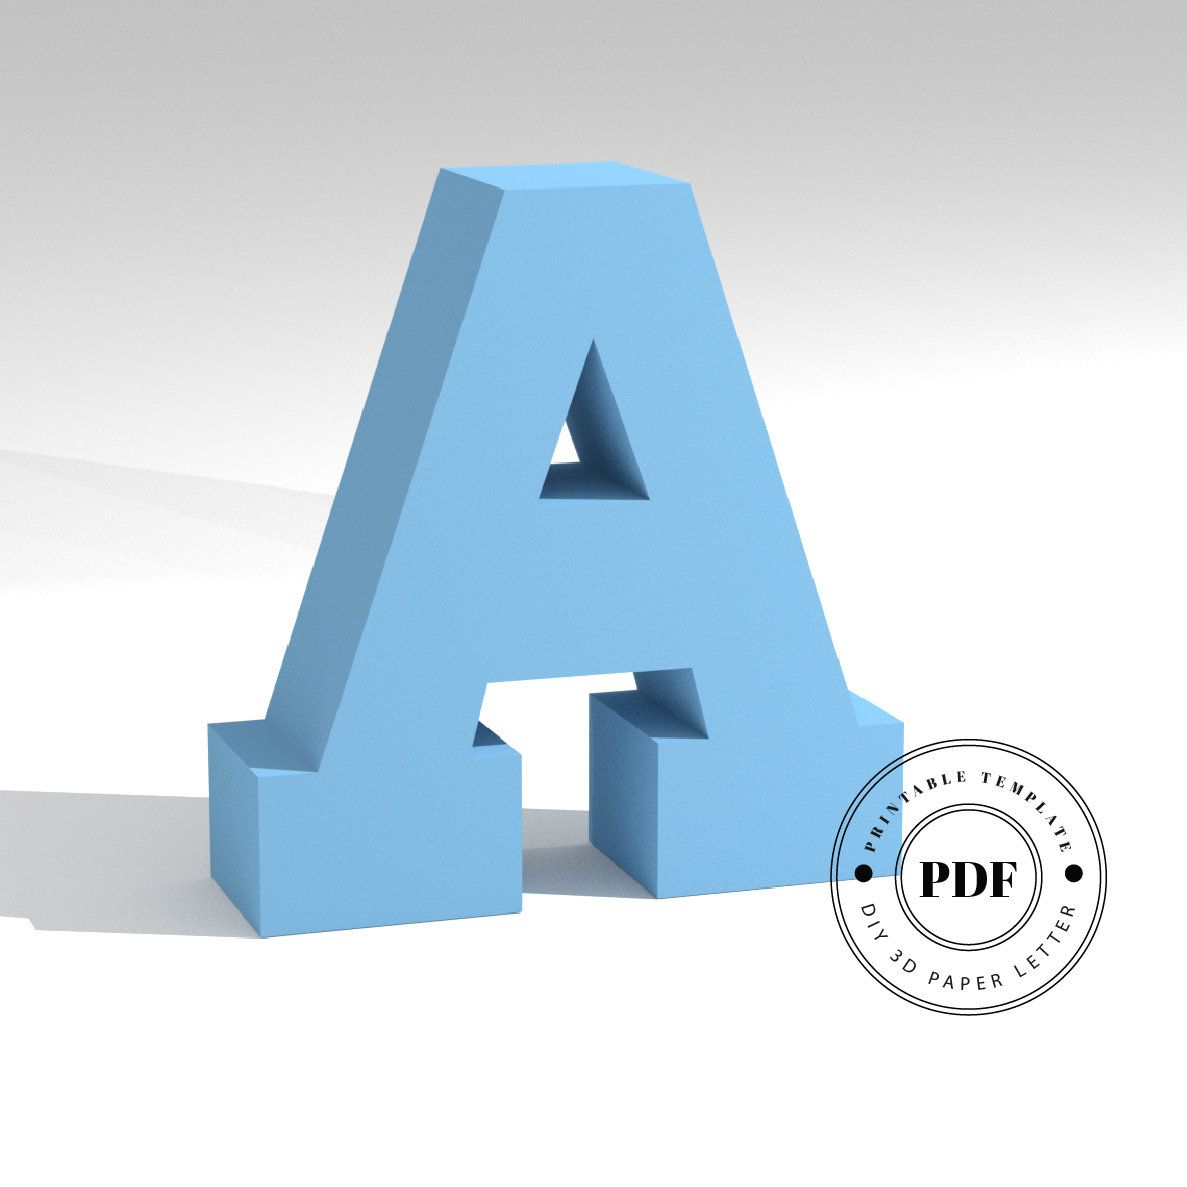 Printable Diy Template Pdf Letter A Low Poly Paper Model Template 3d Paper Lettering Origami Papercraft Cardboa Paper Models Diy Printables Letter Paper